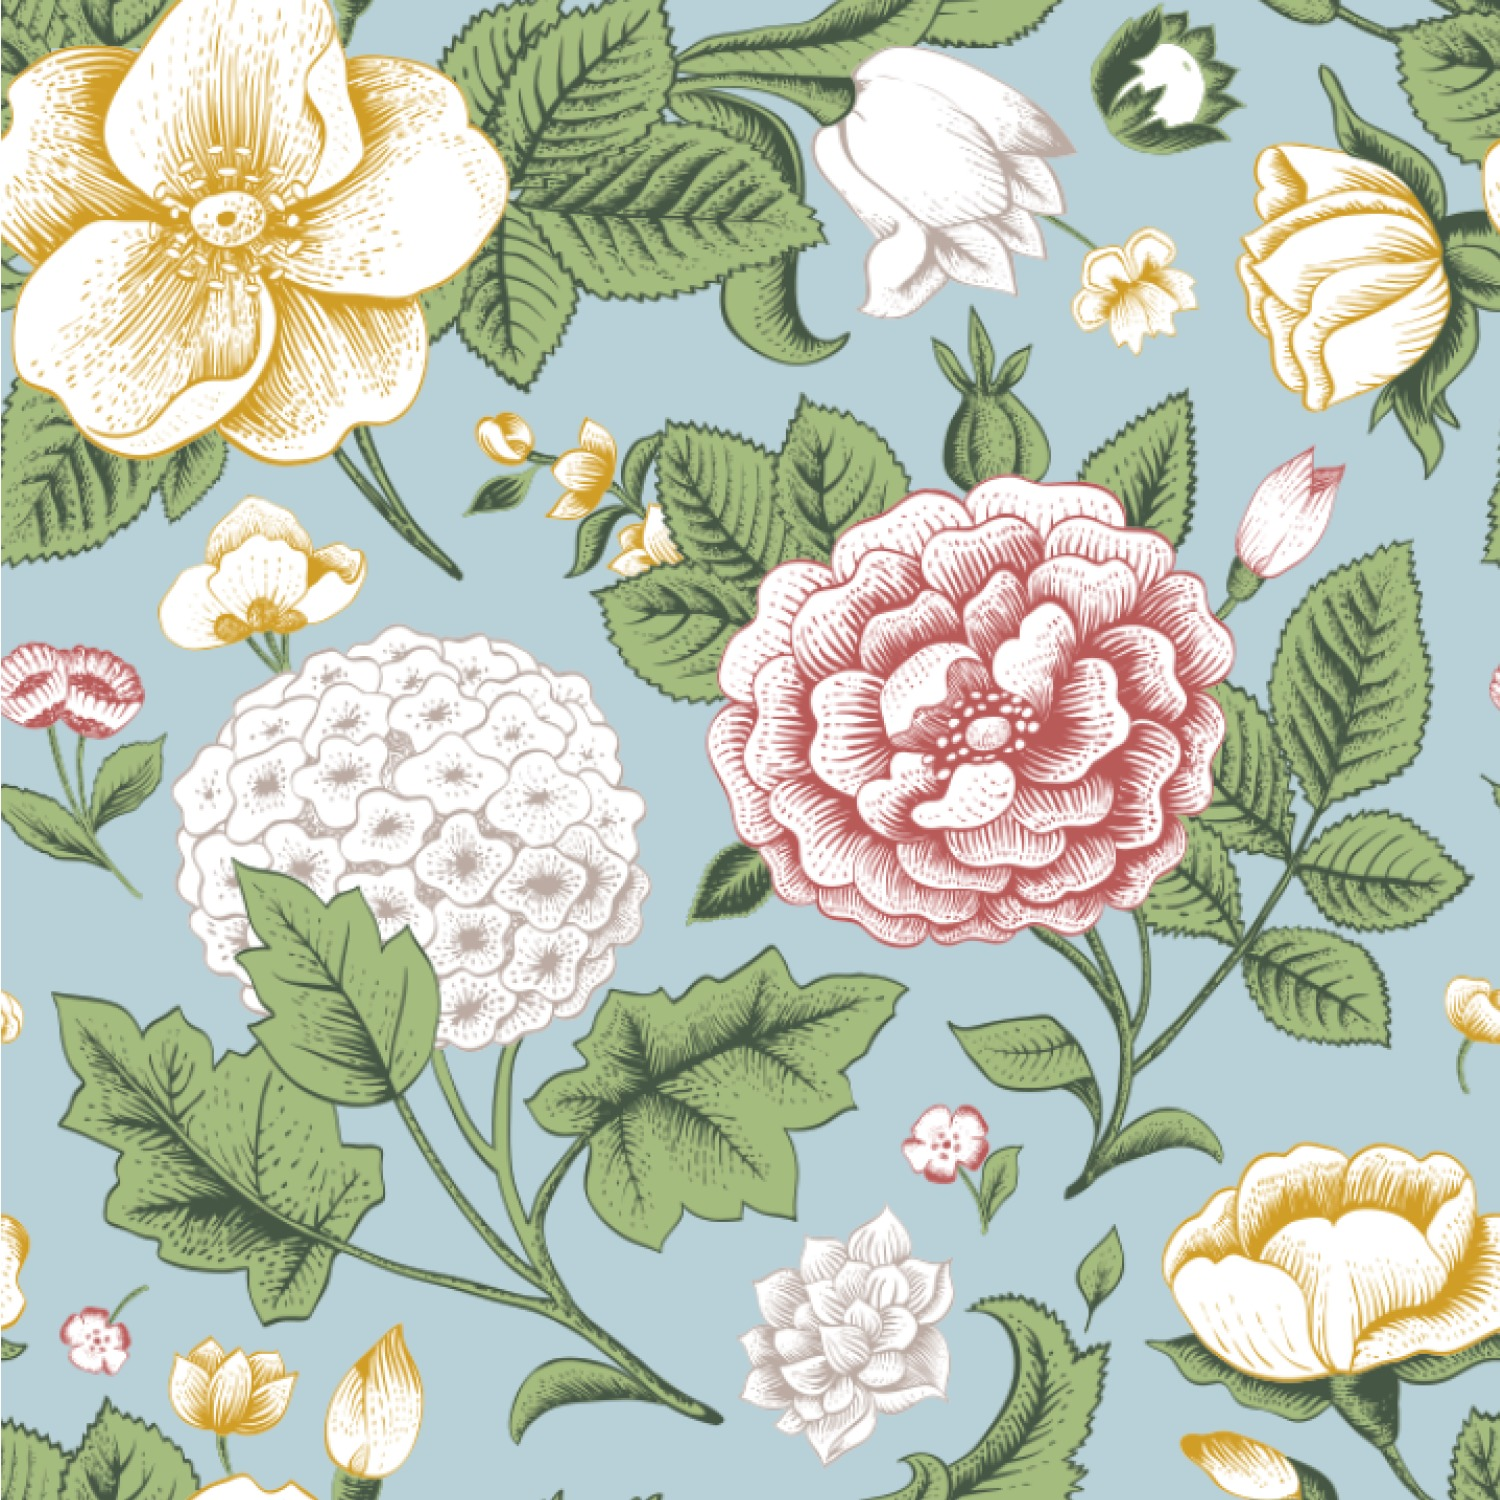 Vintage Floral Wallpaper & Surface Covering - YouCustomizeIt